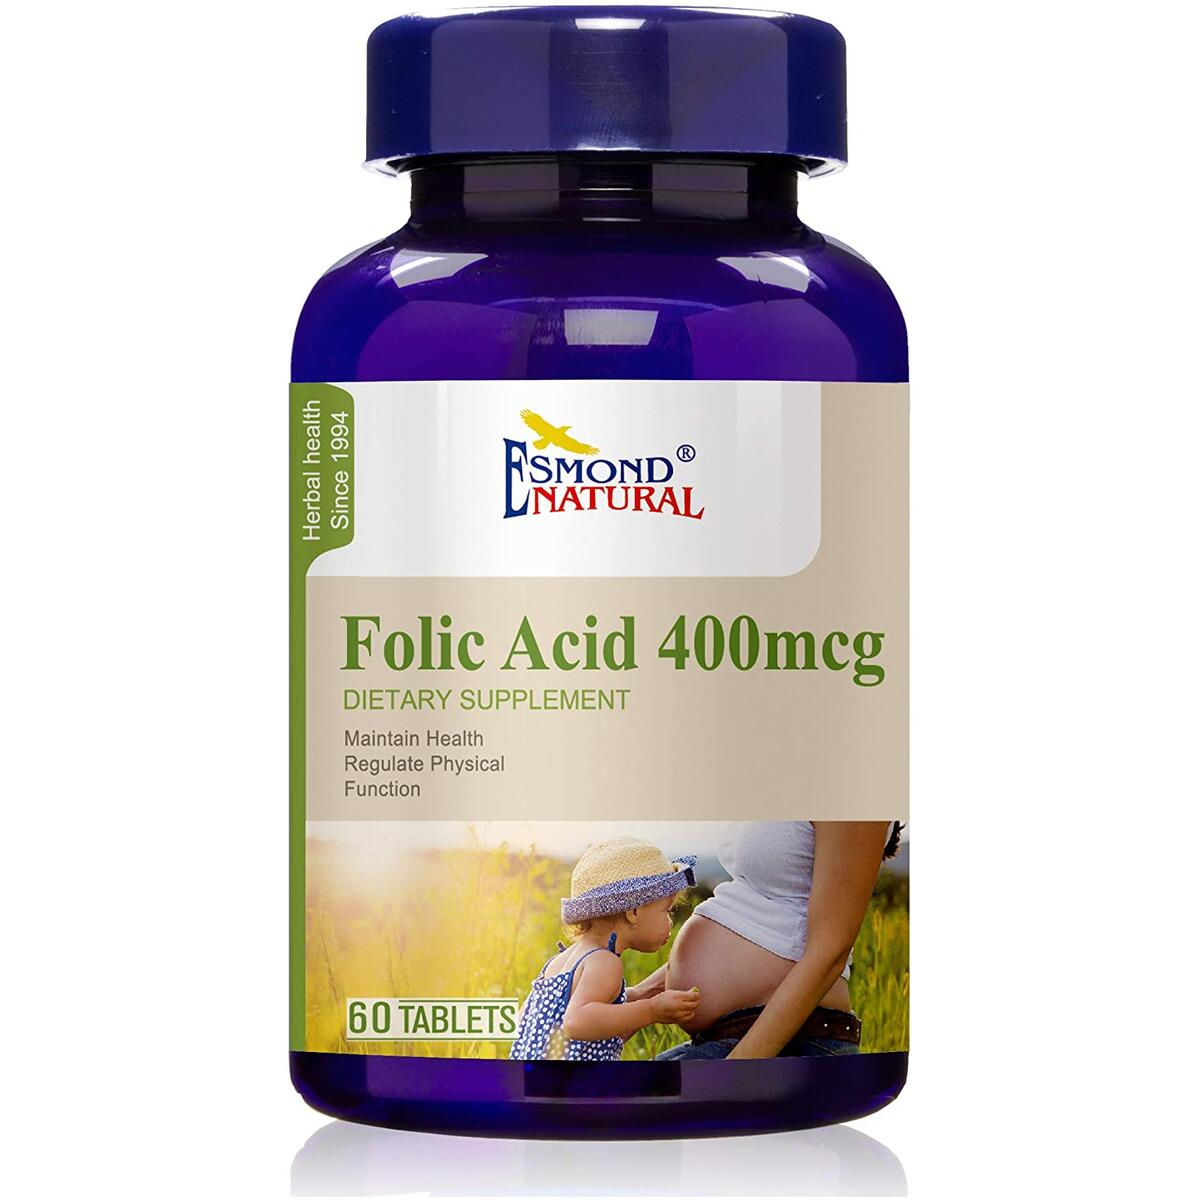 (3 Count, 10% Off) Esmond Natural: Folic Acid 400mcg (Pregnancy Support, Maintain Health Functions), GMP, Natural Product Assn Certified, Made in USA-400mcg, 180 Tablets